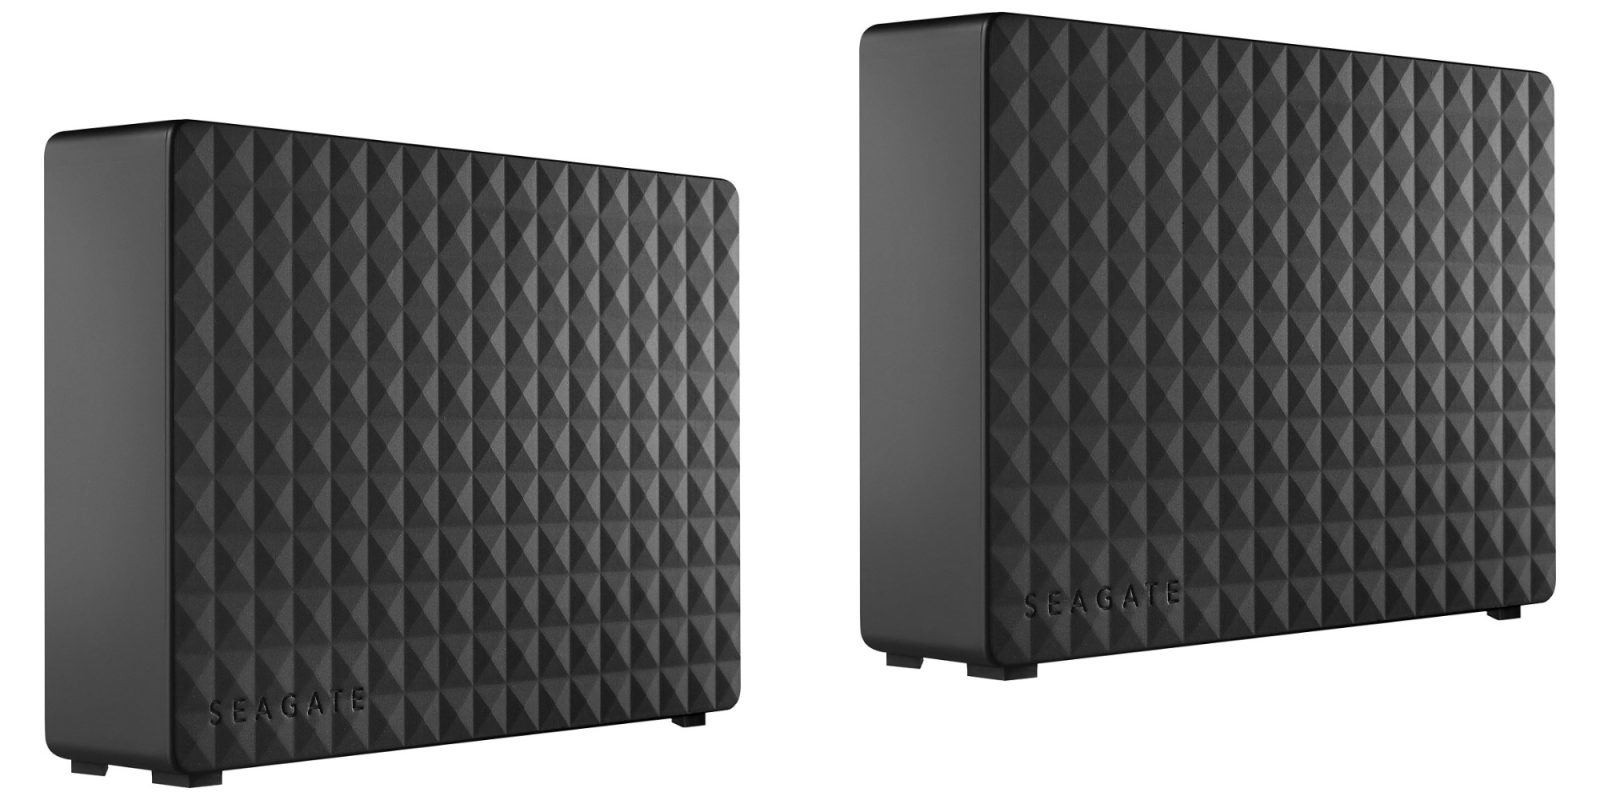 Score 4TB of Seagate storage with its desktop hard drive at a new low of $70